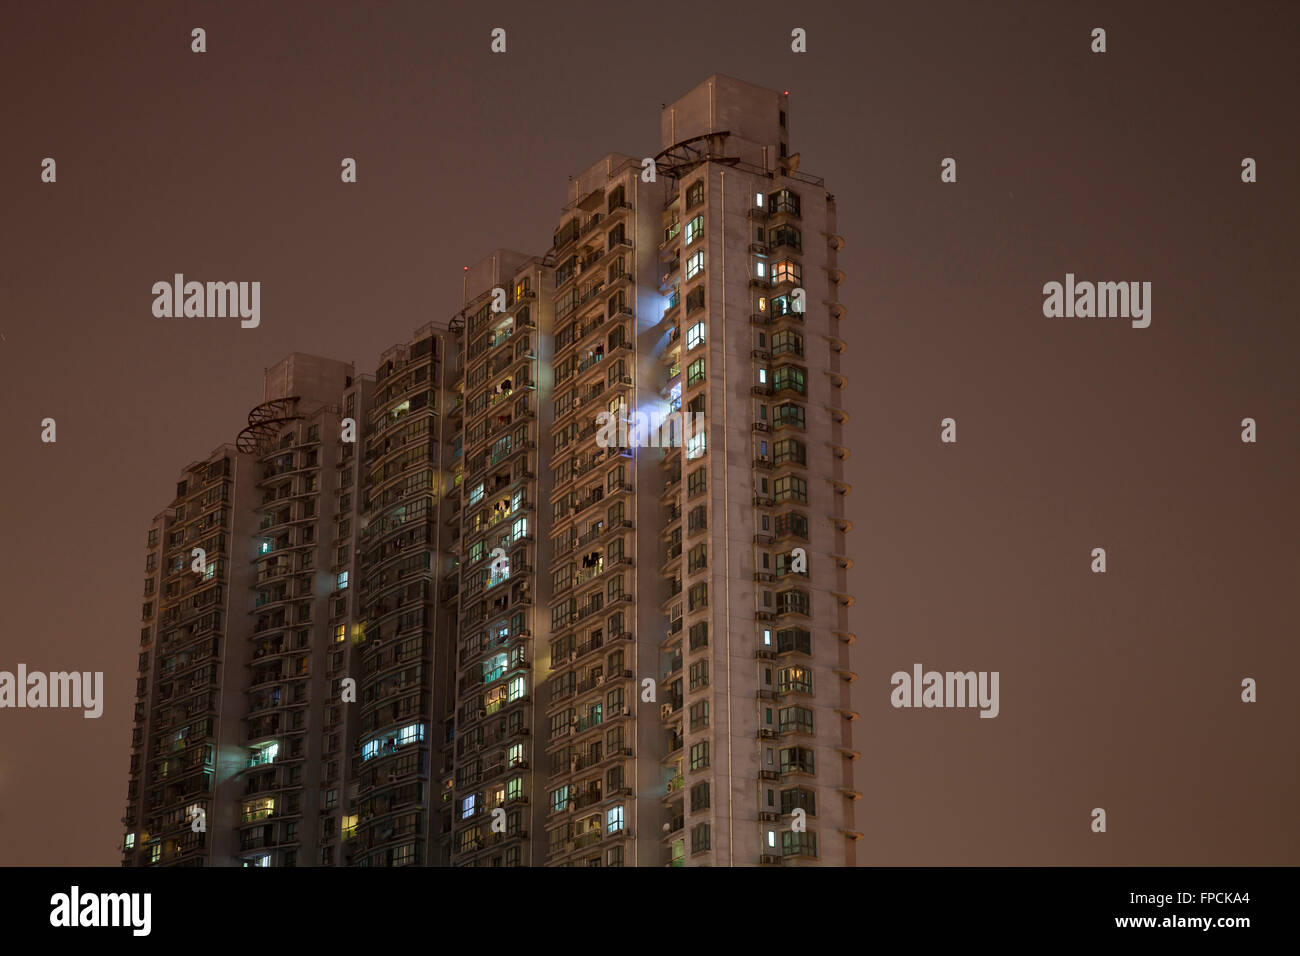 A view from below of apartment blocks in Shanghai, the building is called Moganshan Lu. - Stock Image